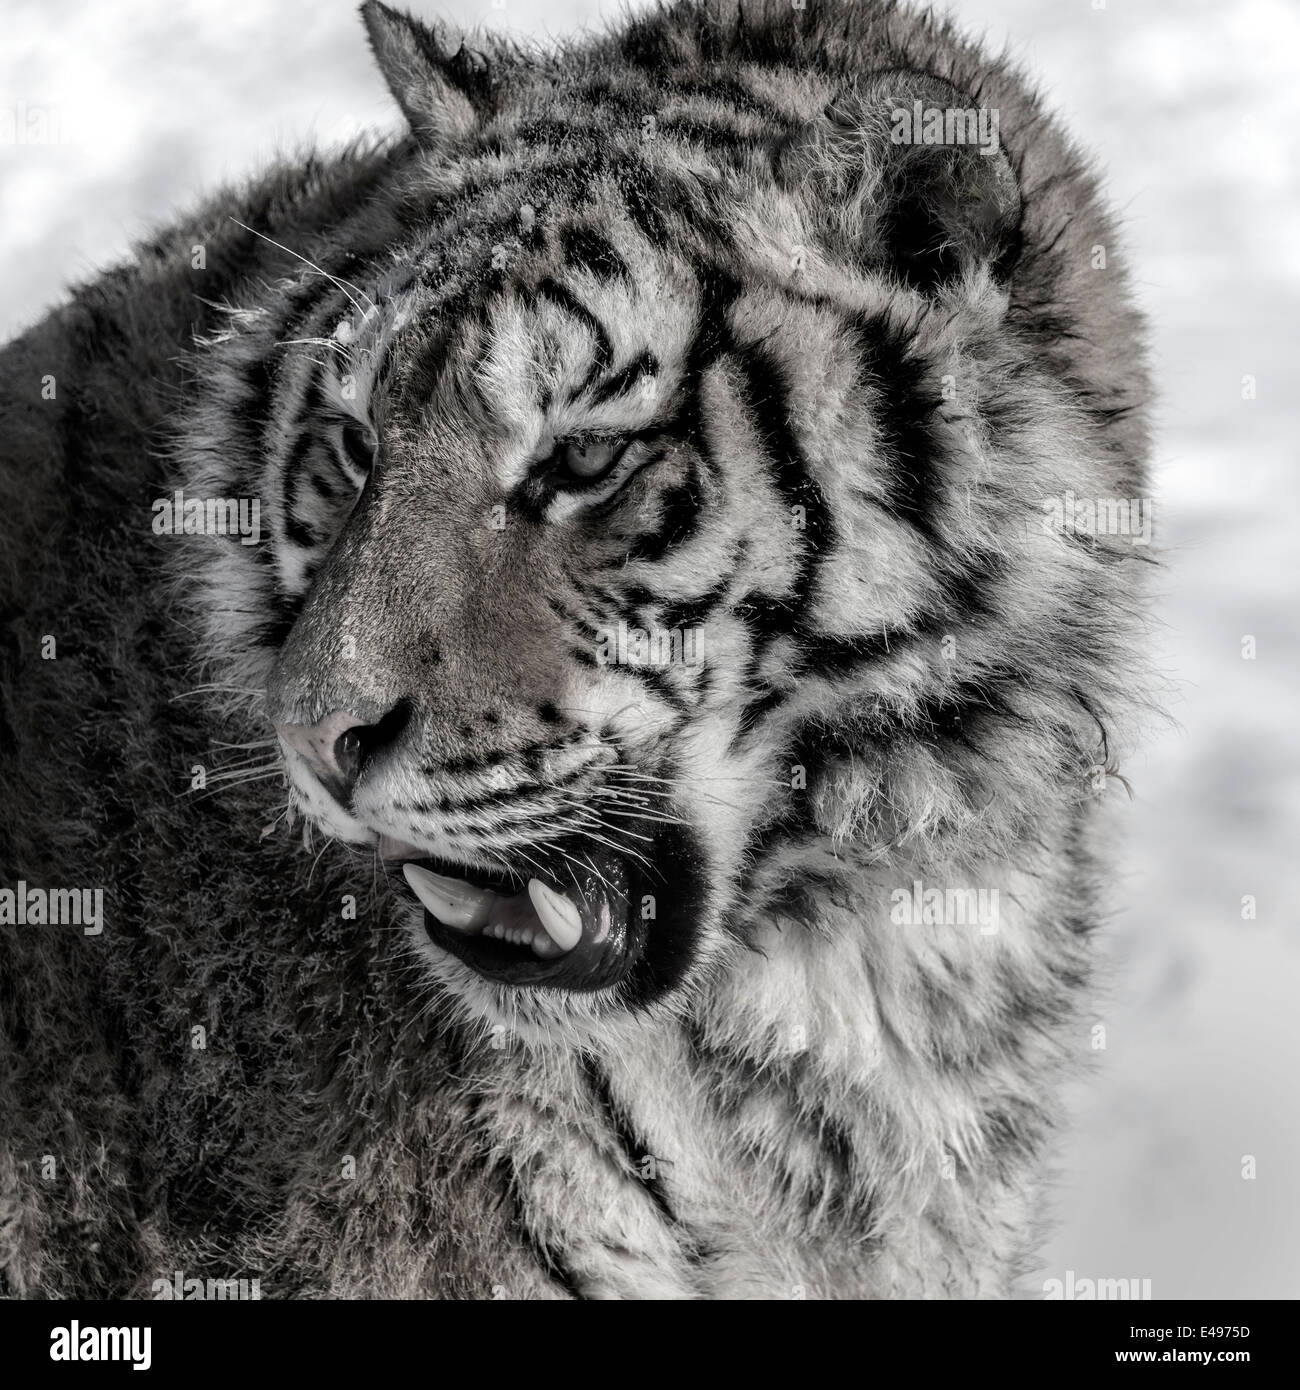 Portrait of a Siberian tiger B/W, Hengdaohezi Breeding Center, Mudanjiang, China - Stock Image